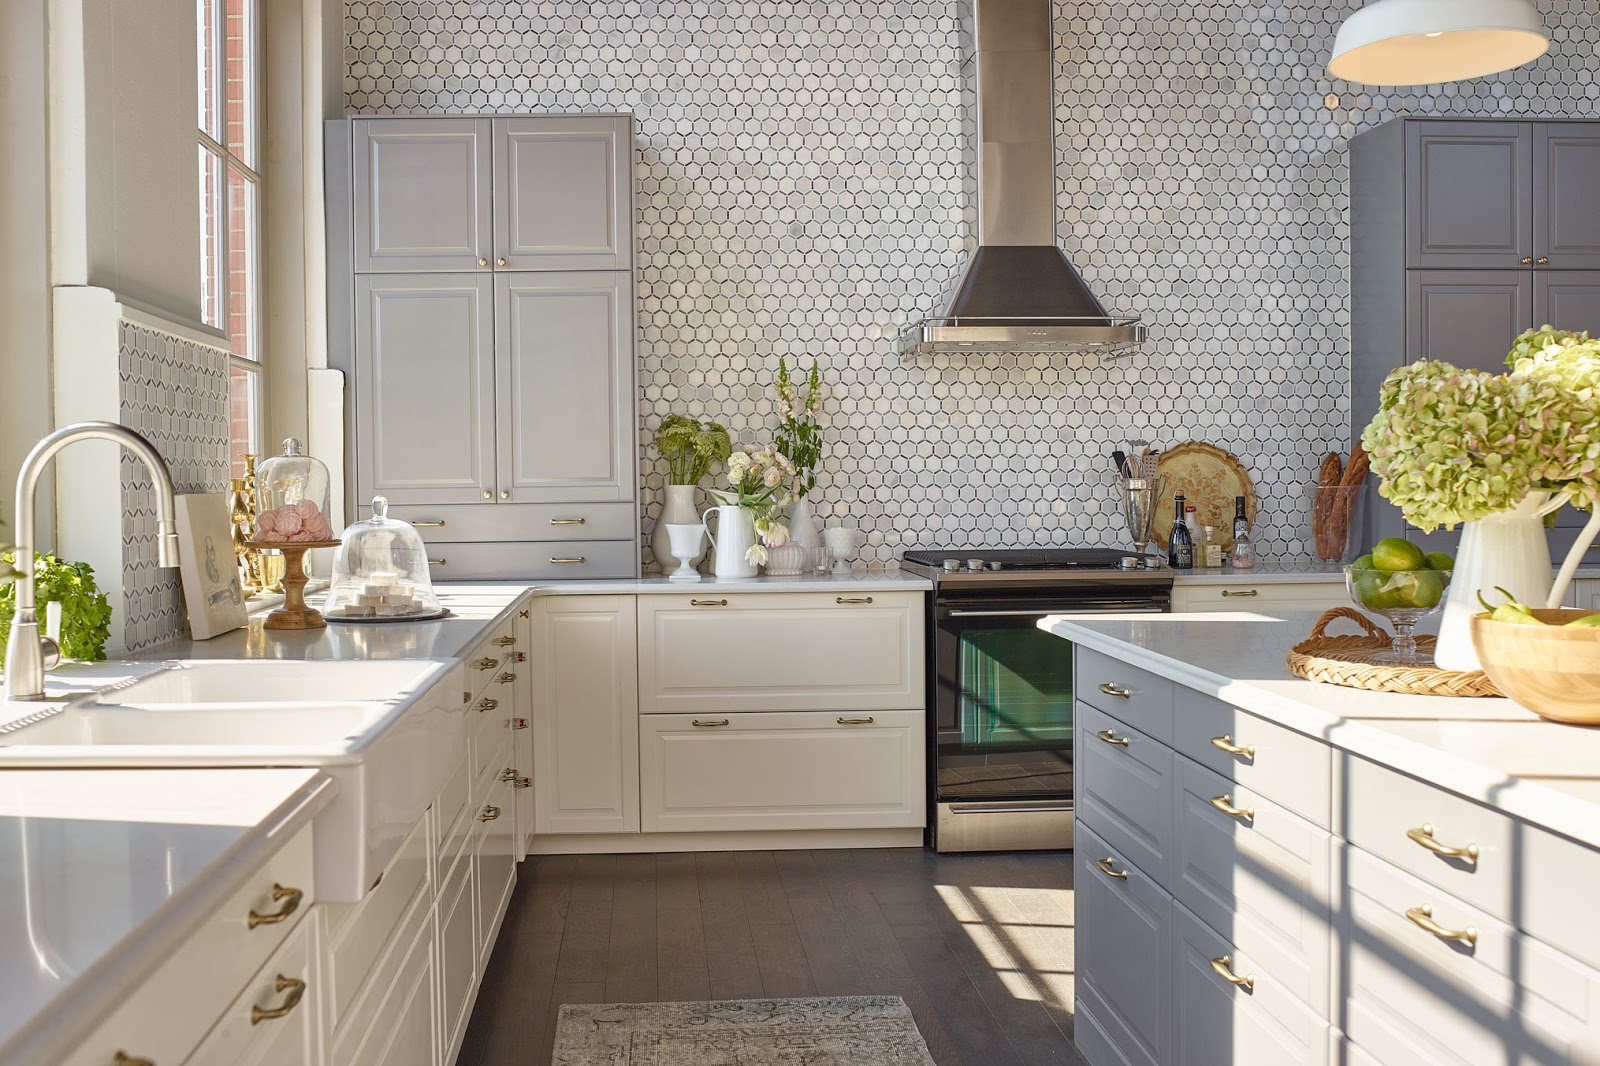 Nordic soul for Jillian harris kitchen designs